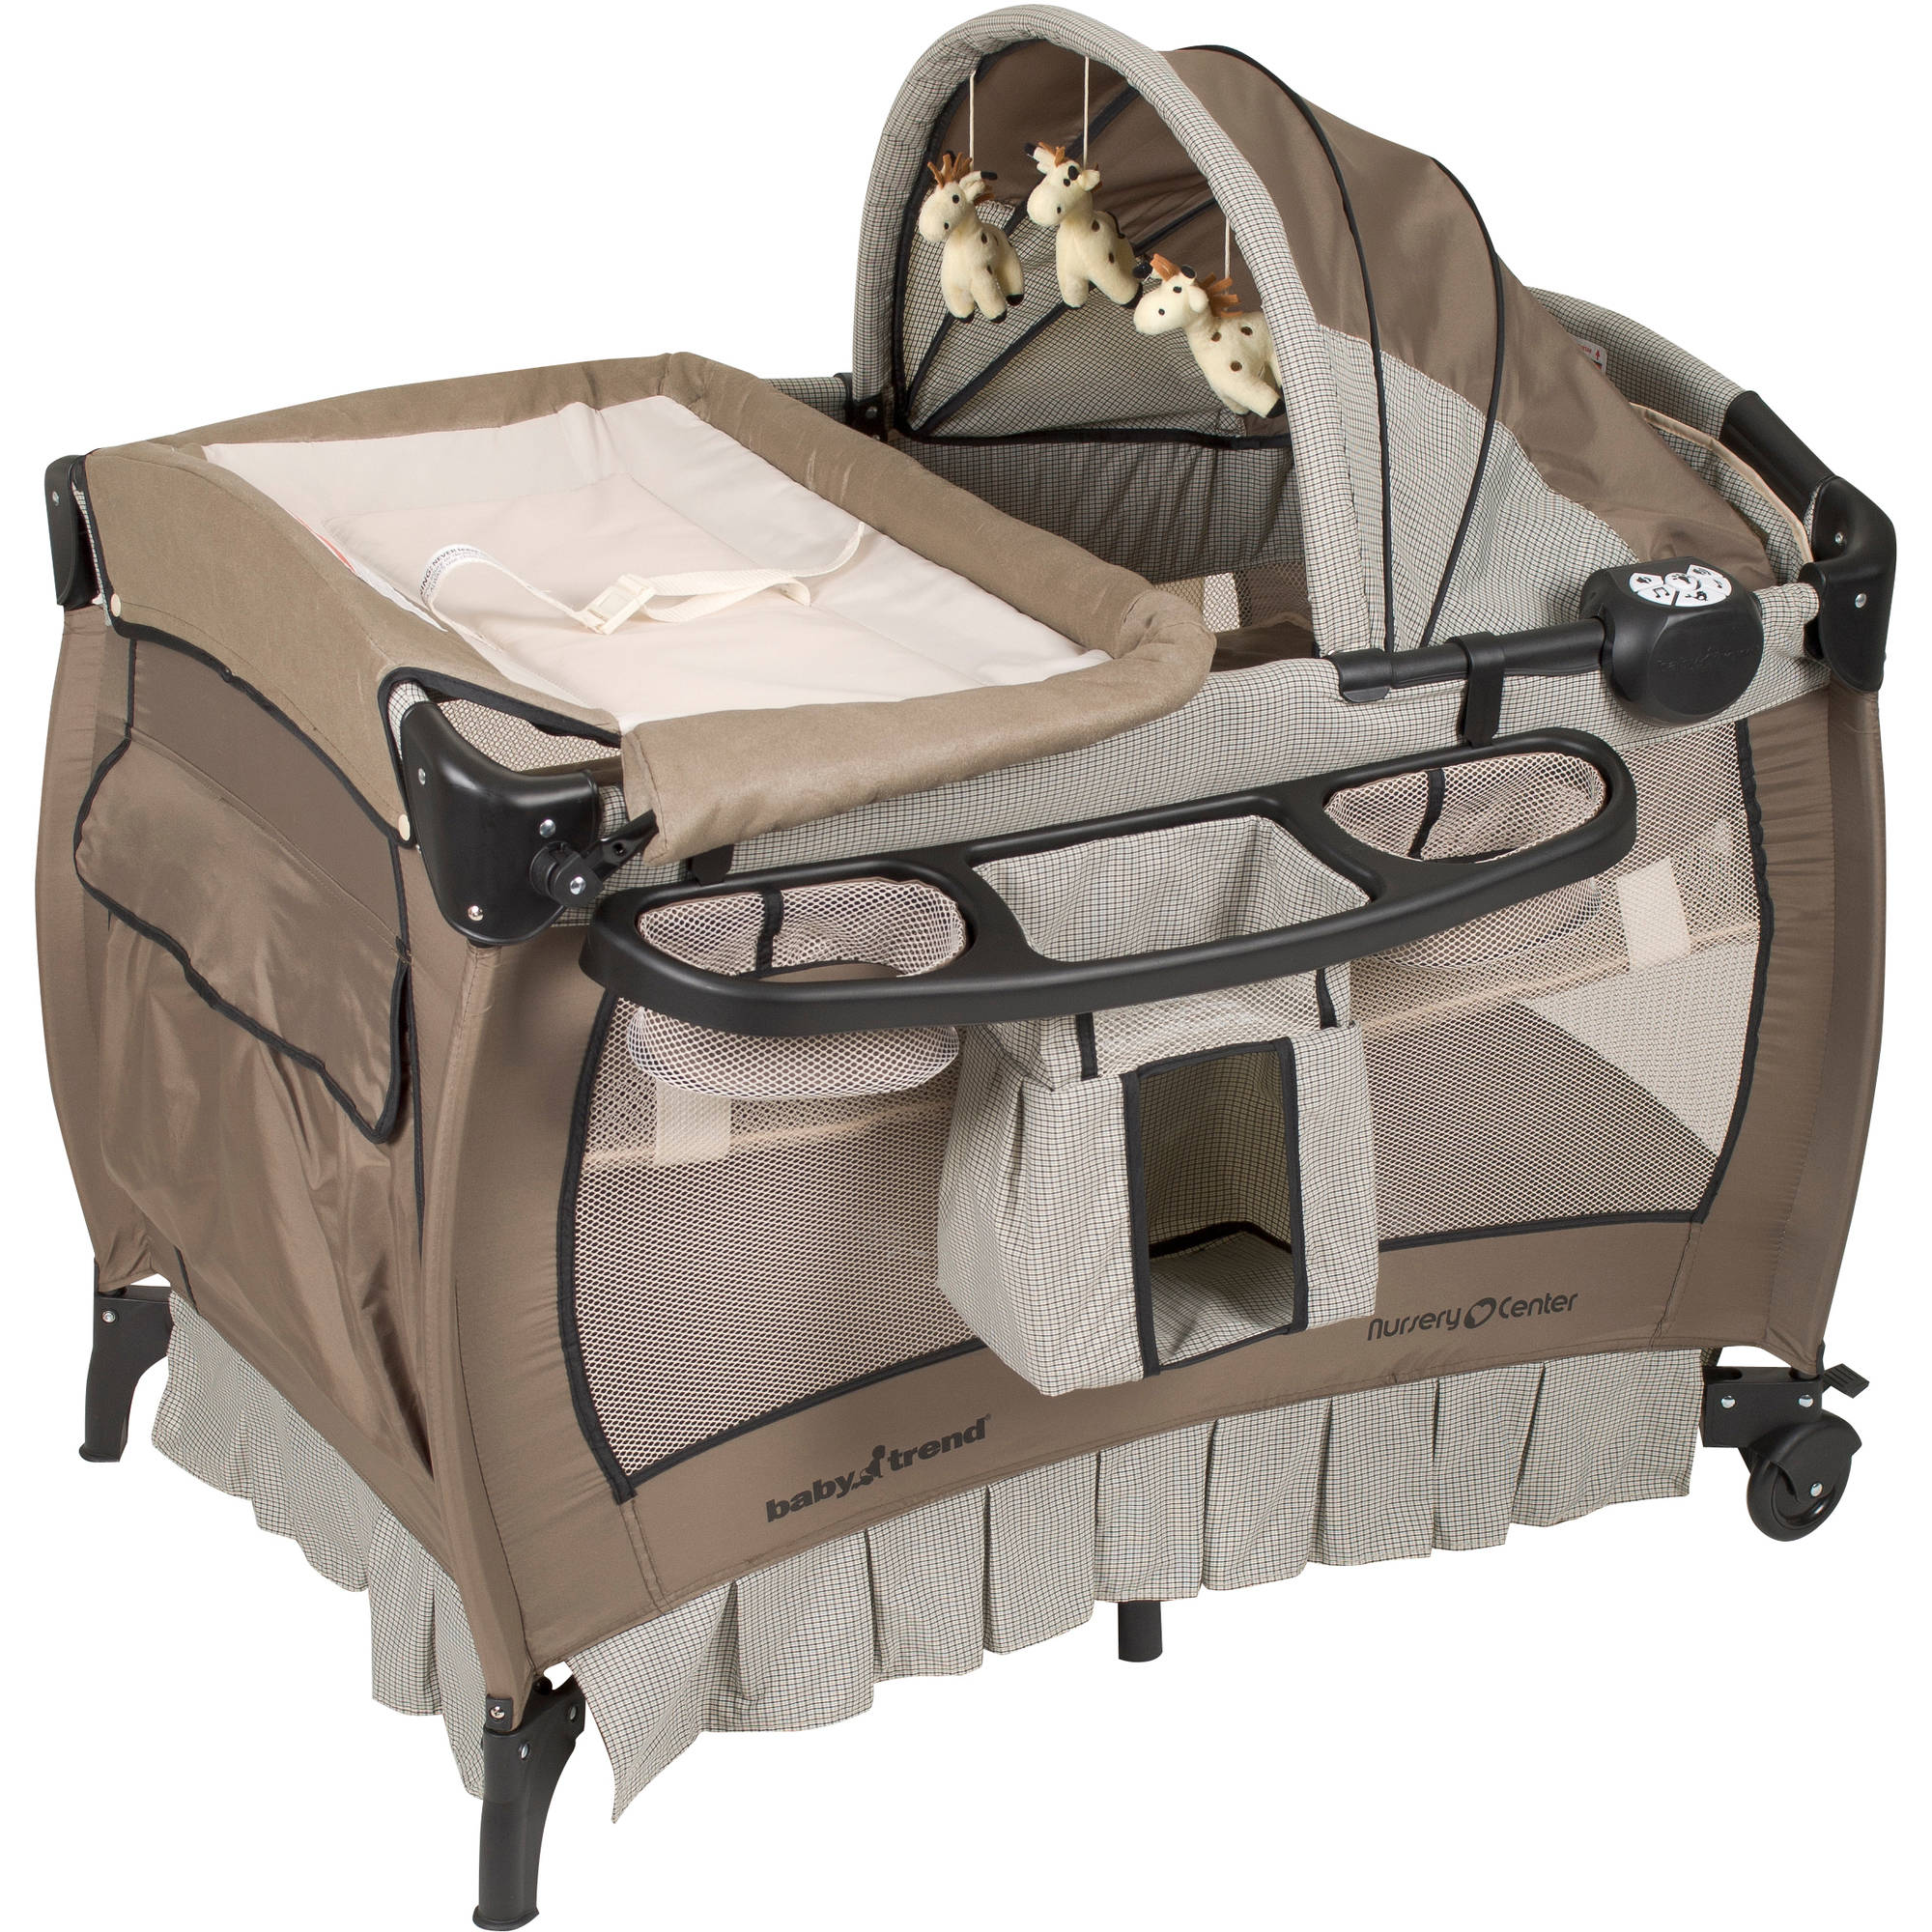 Baby Trend Deluxe Nursery Center Playard, Havenwood